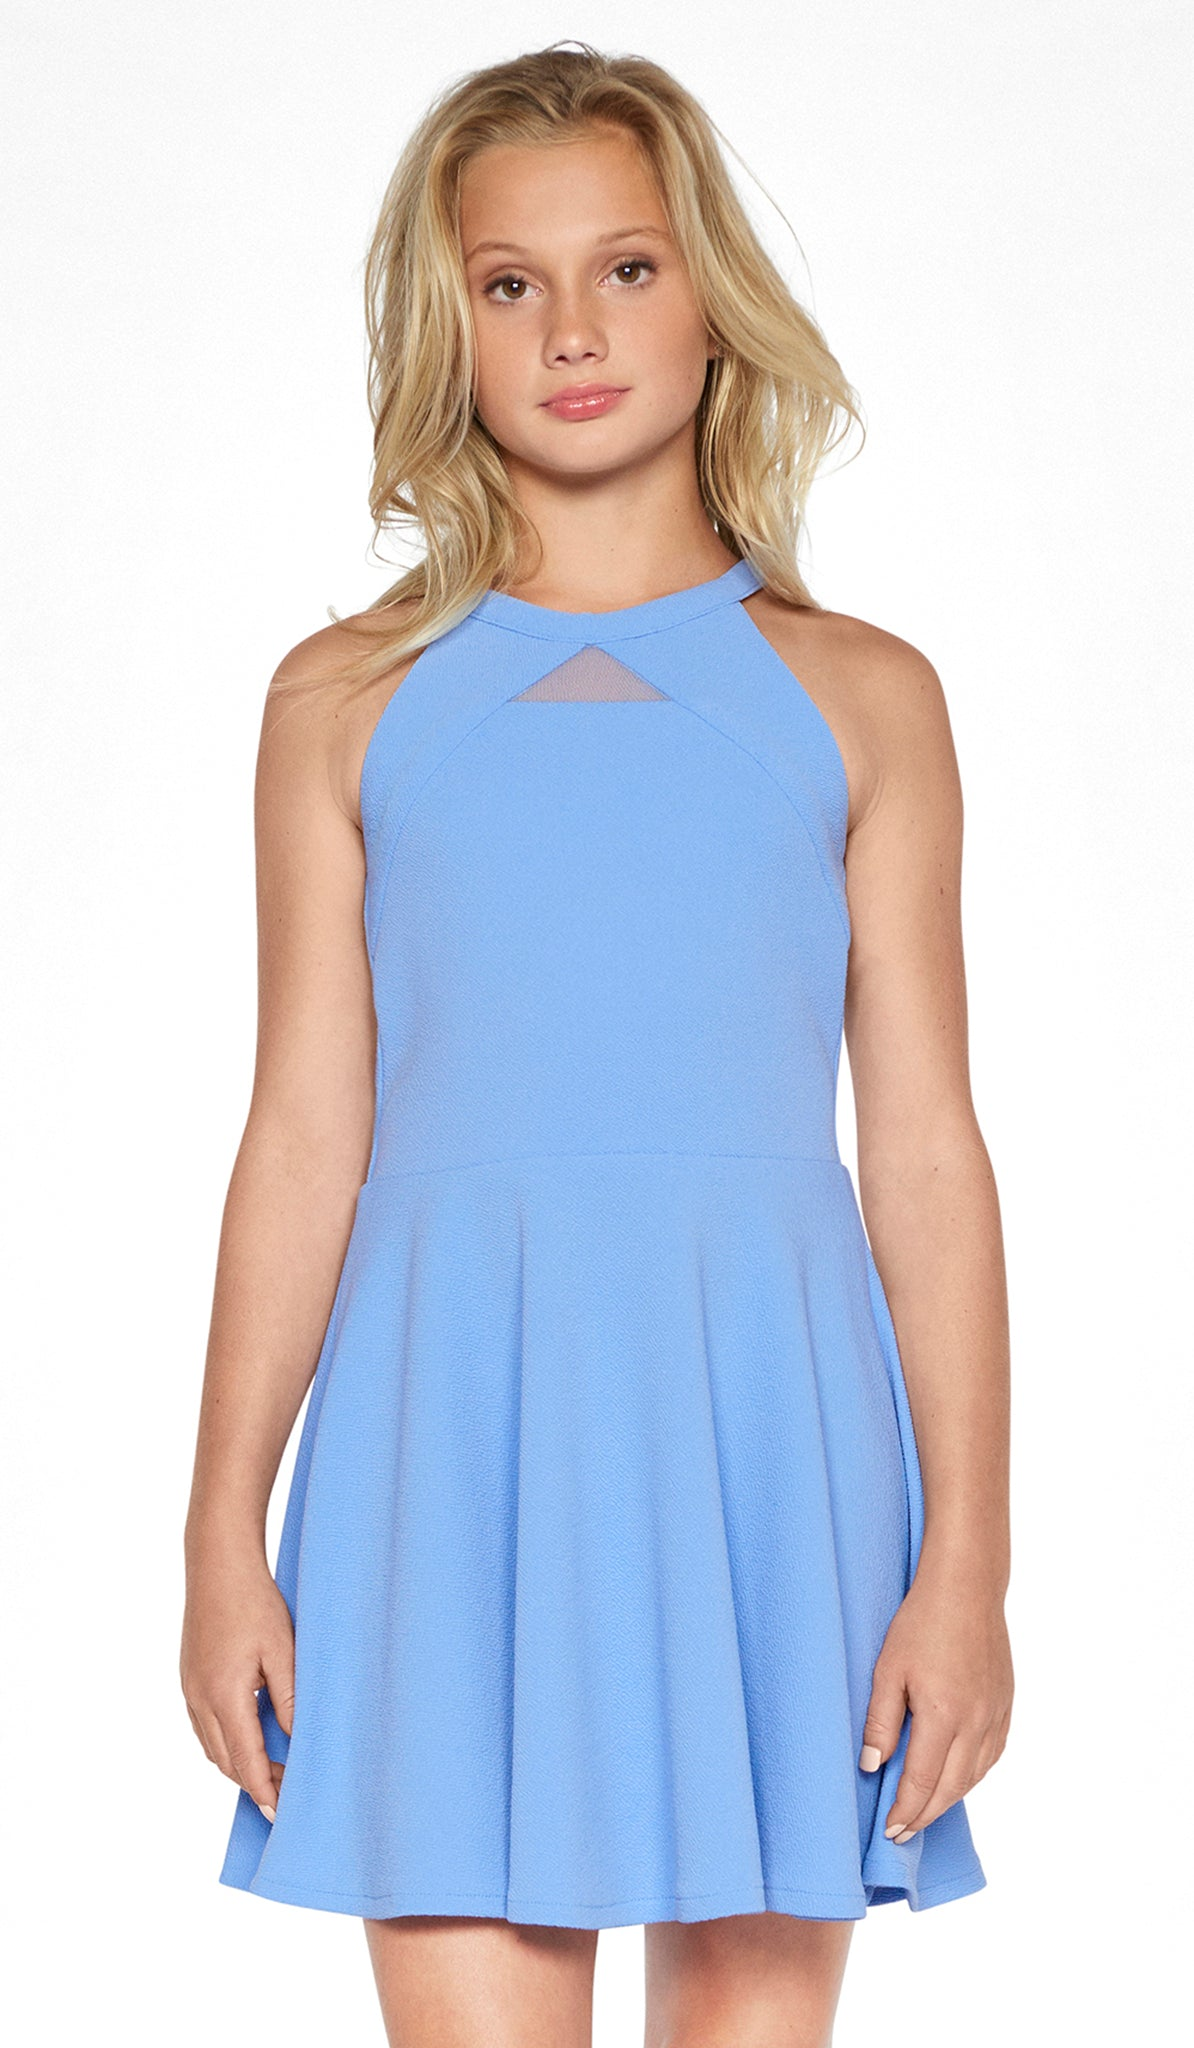 01e7d850d13 THE ELISE DRESS (JUNIORS). Junior Periwinkle textured knit fit and flare  dress with self-colored blocking and mesh detail